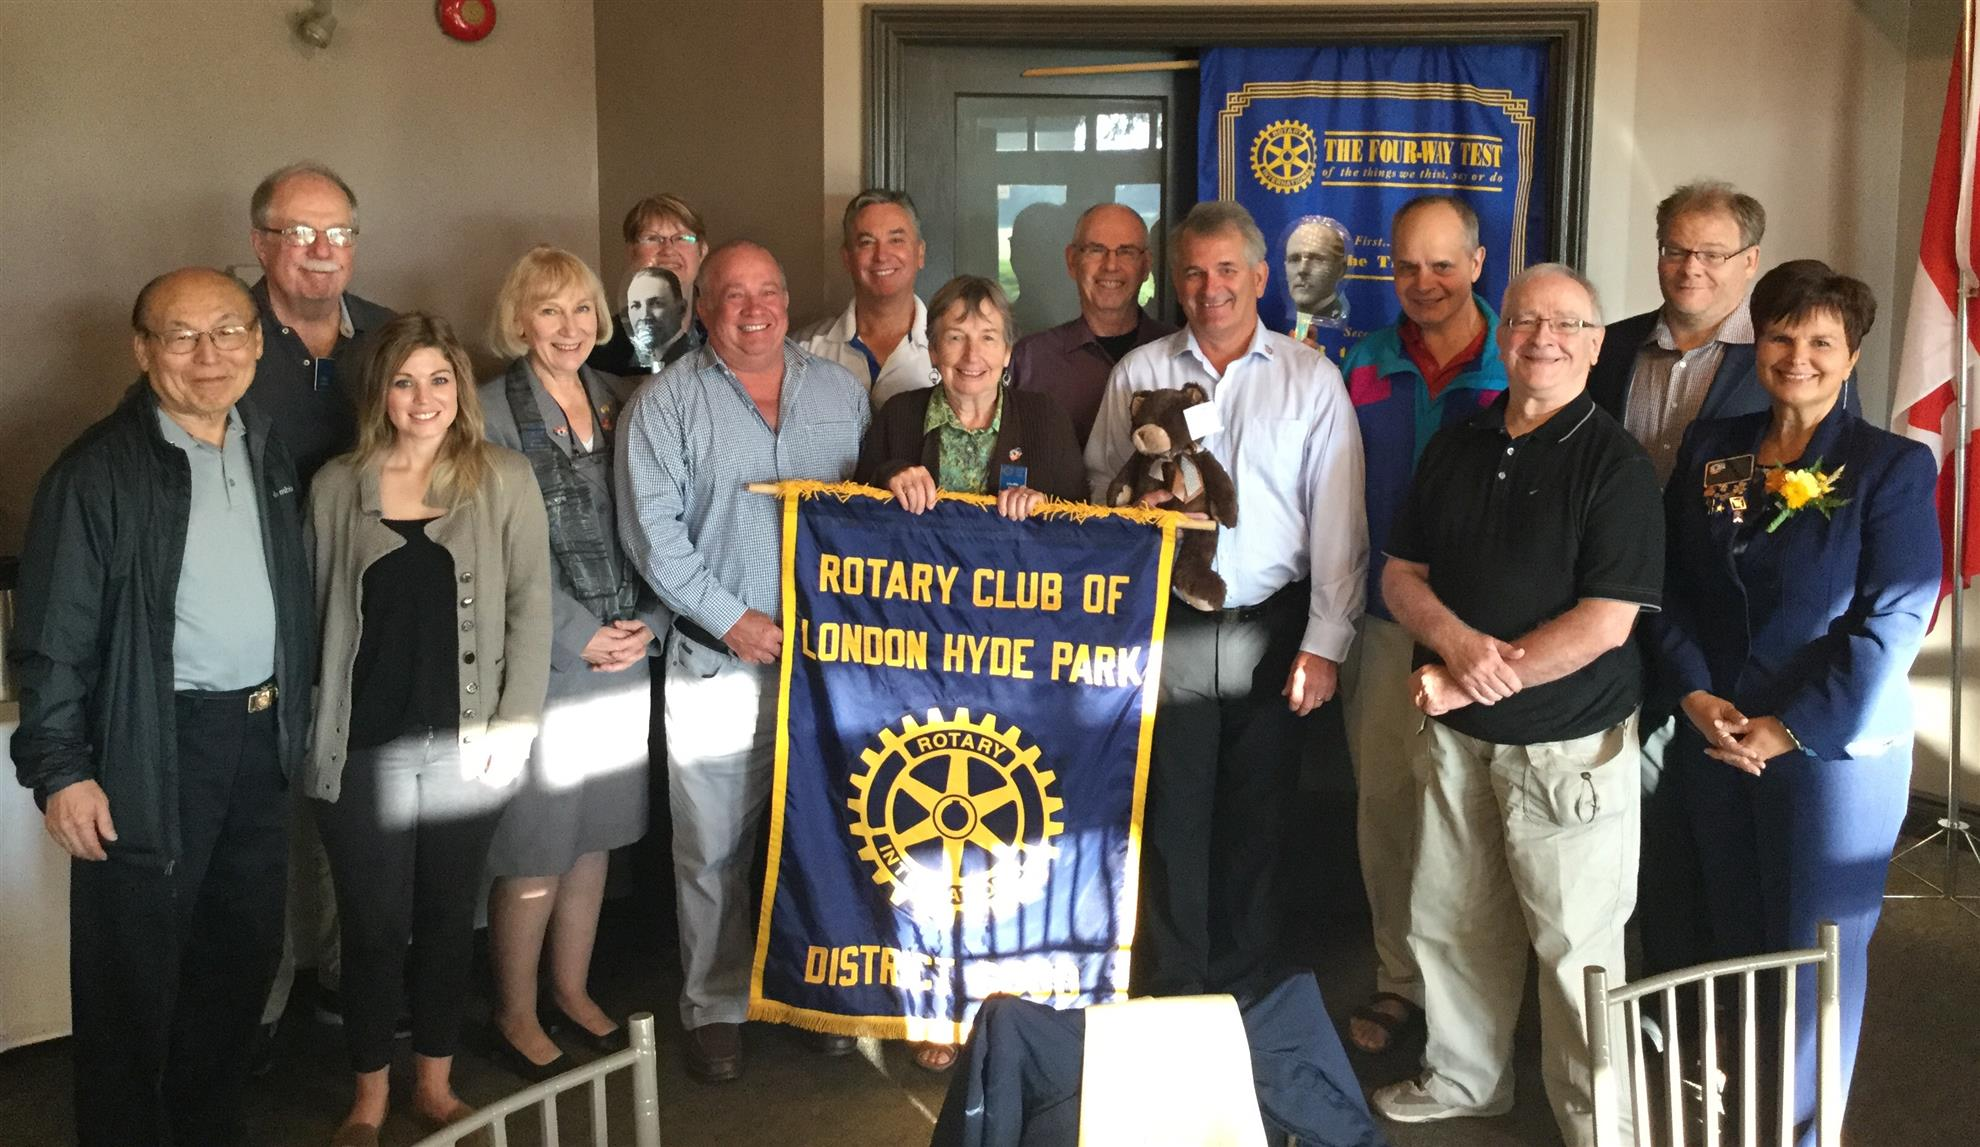 02. Club pledges to introduce our new bear mascot to Rotary